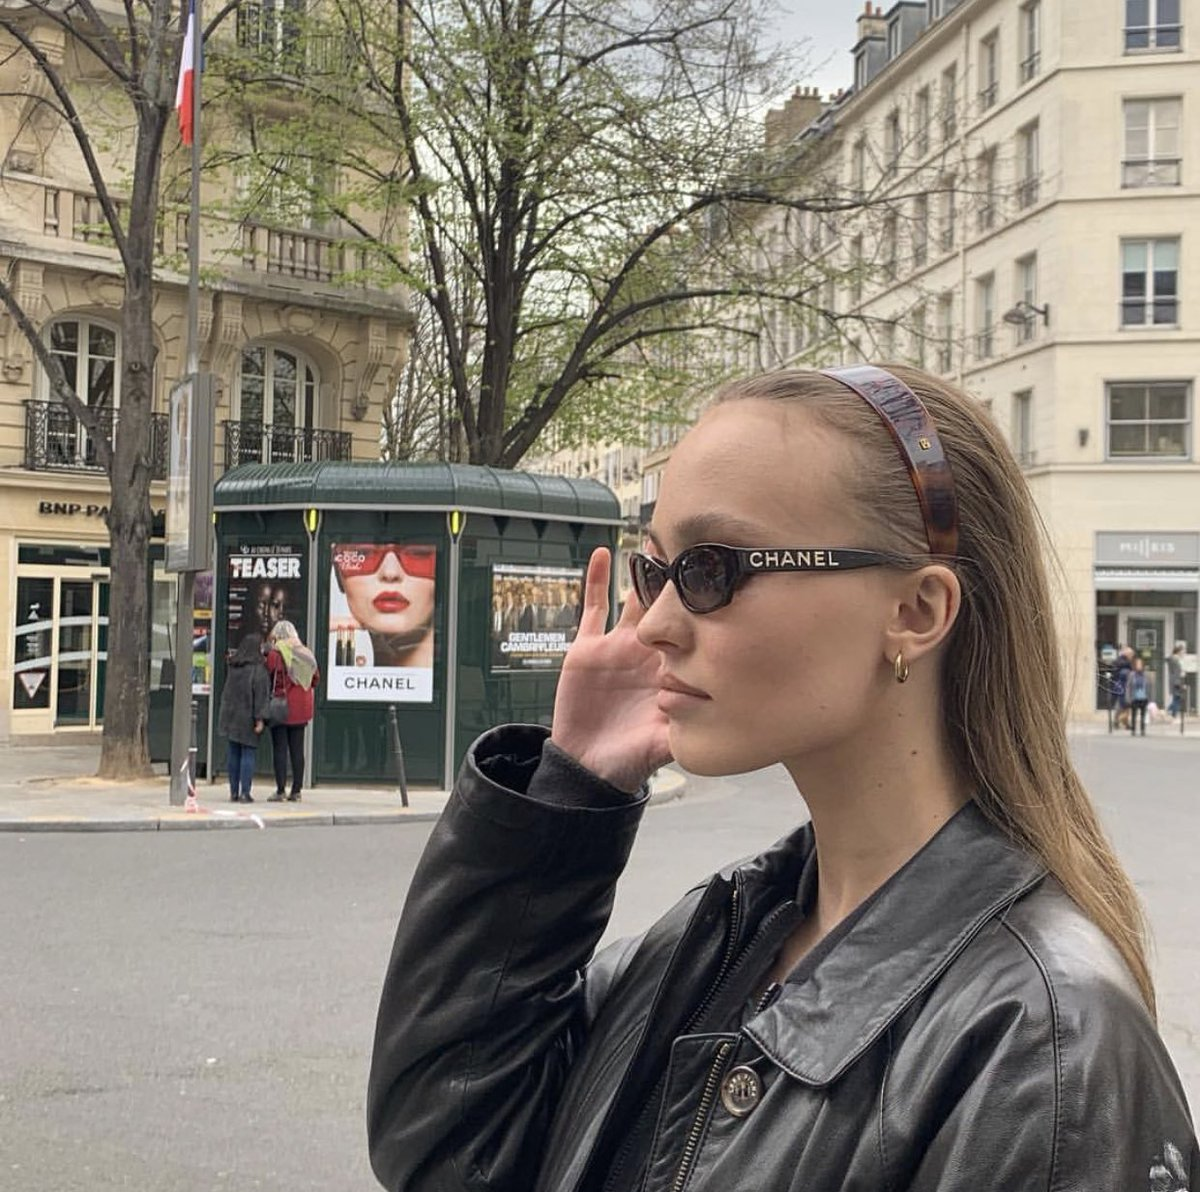 lily out in paris <br>http://pic.twitter.com/e4Nq2qVkB4